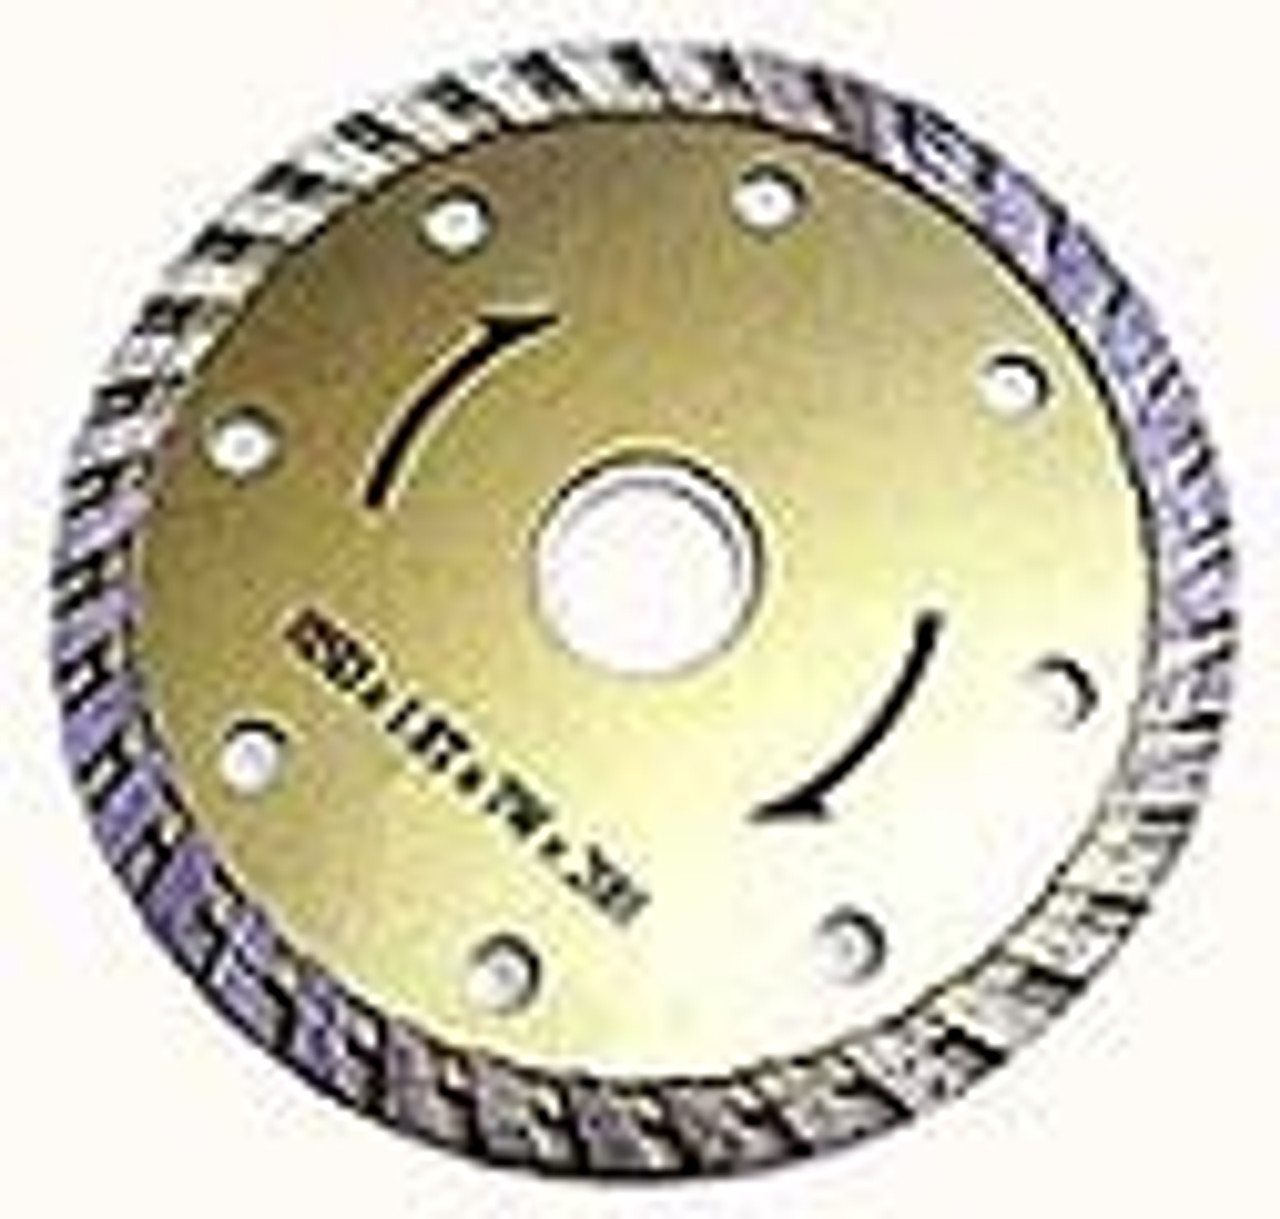 4 inch Diamond Wet Or Dry Cutting Blade